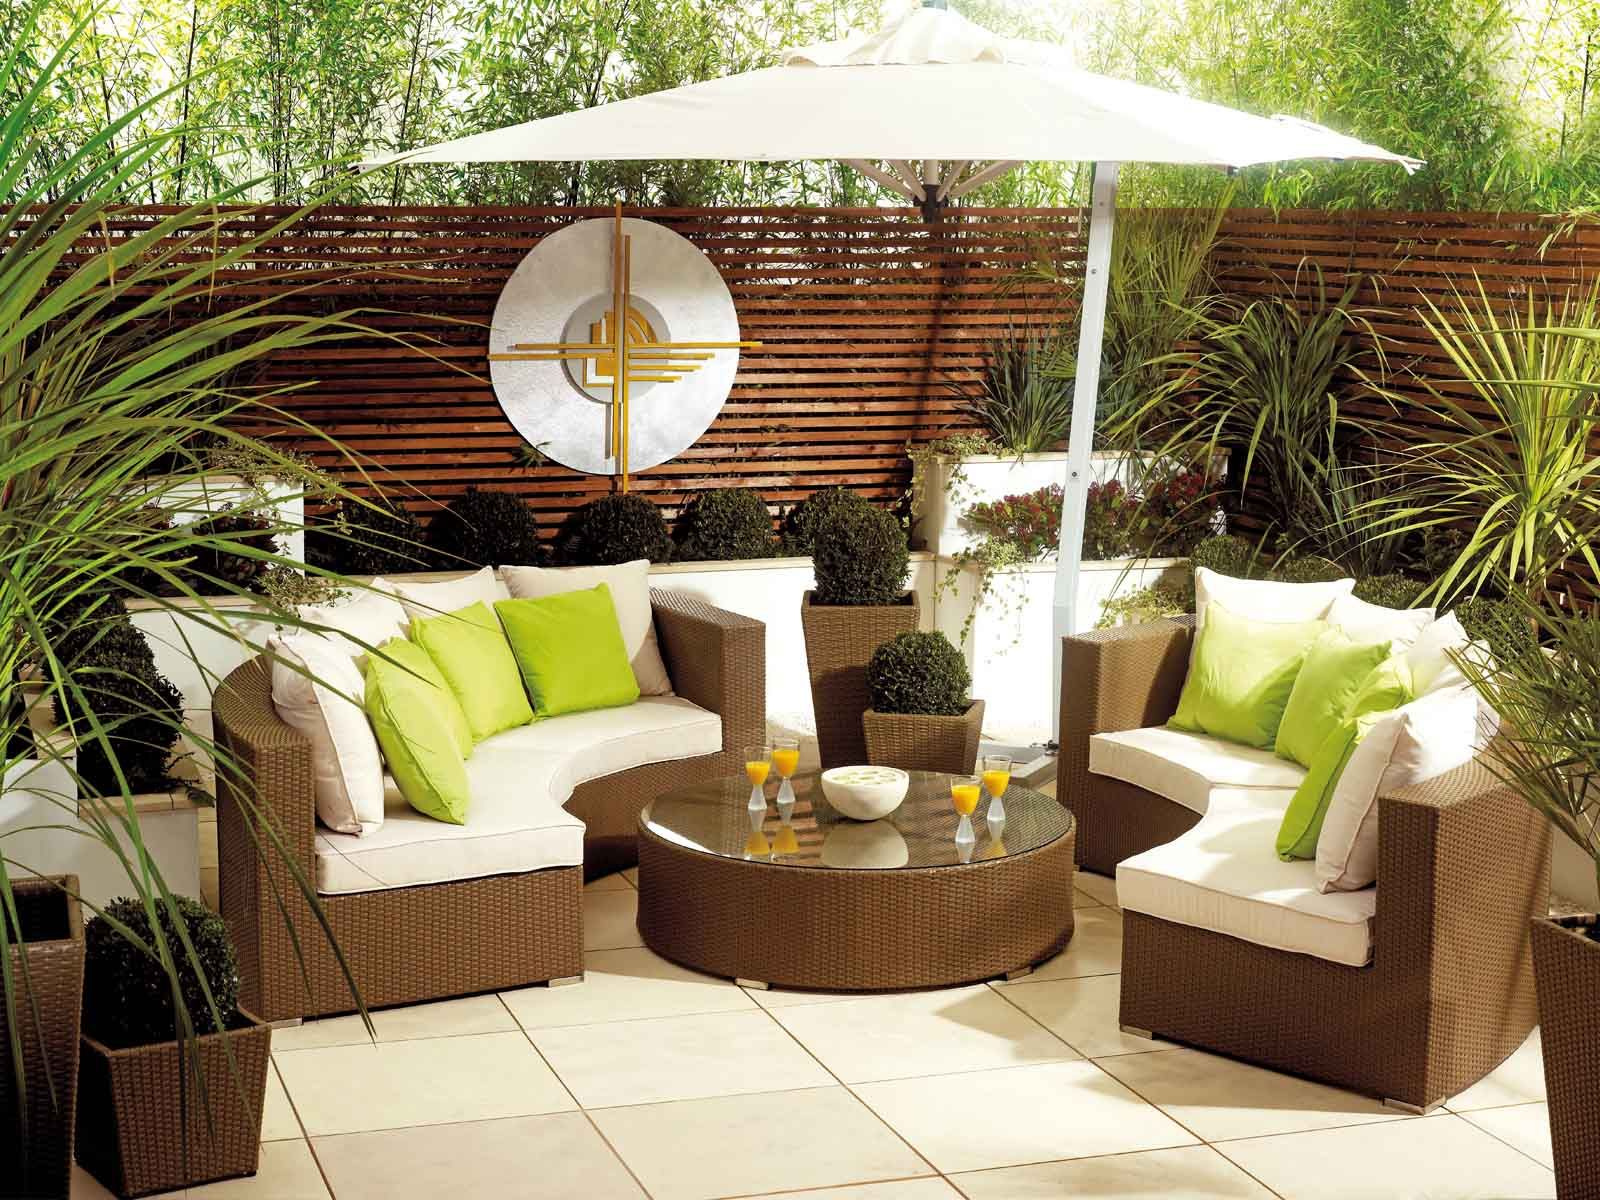 20 beautiful outdoor living room designs that will delight Outside rooms garden design